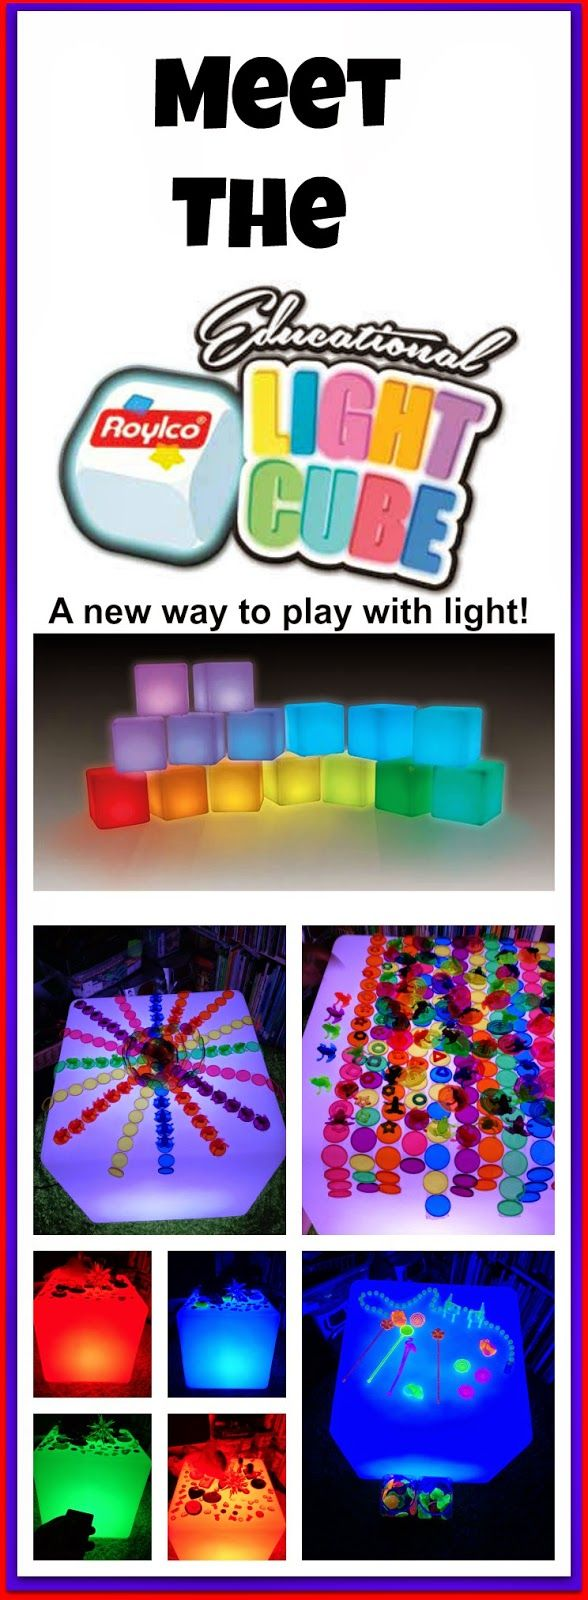 Meet the light cube - a new way to play with light!